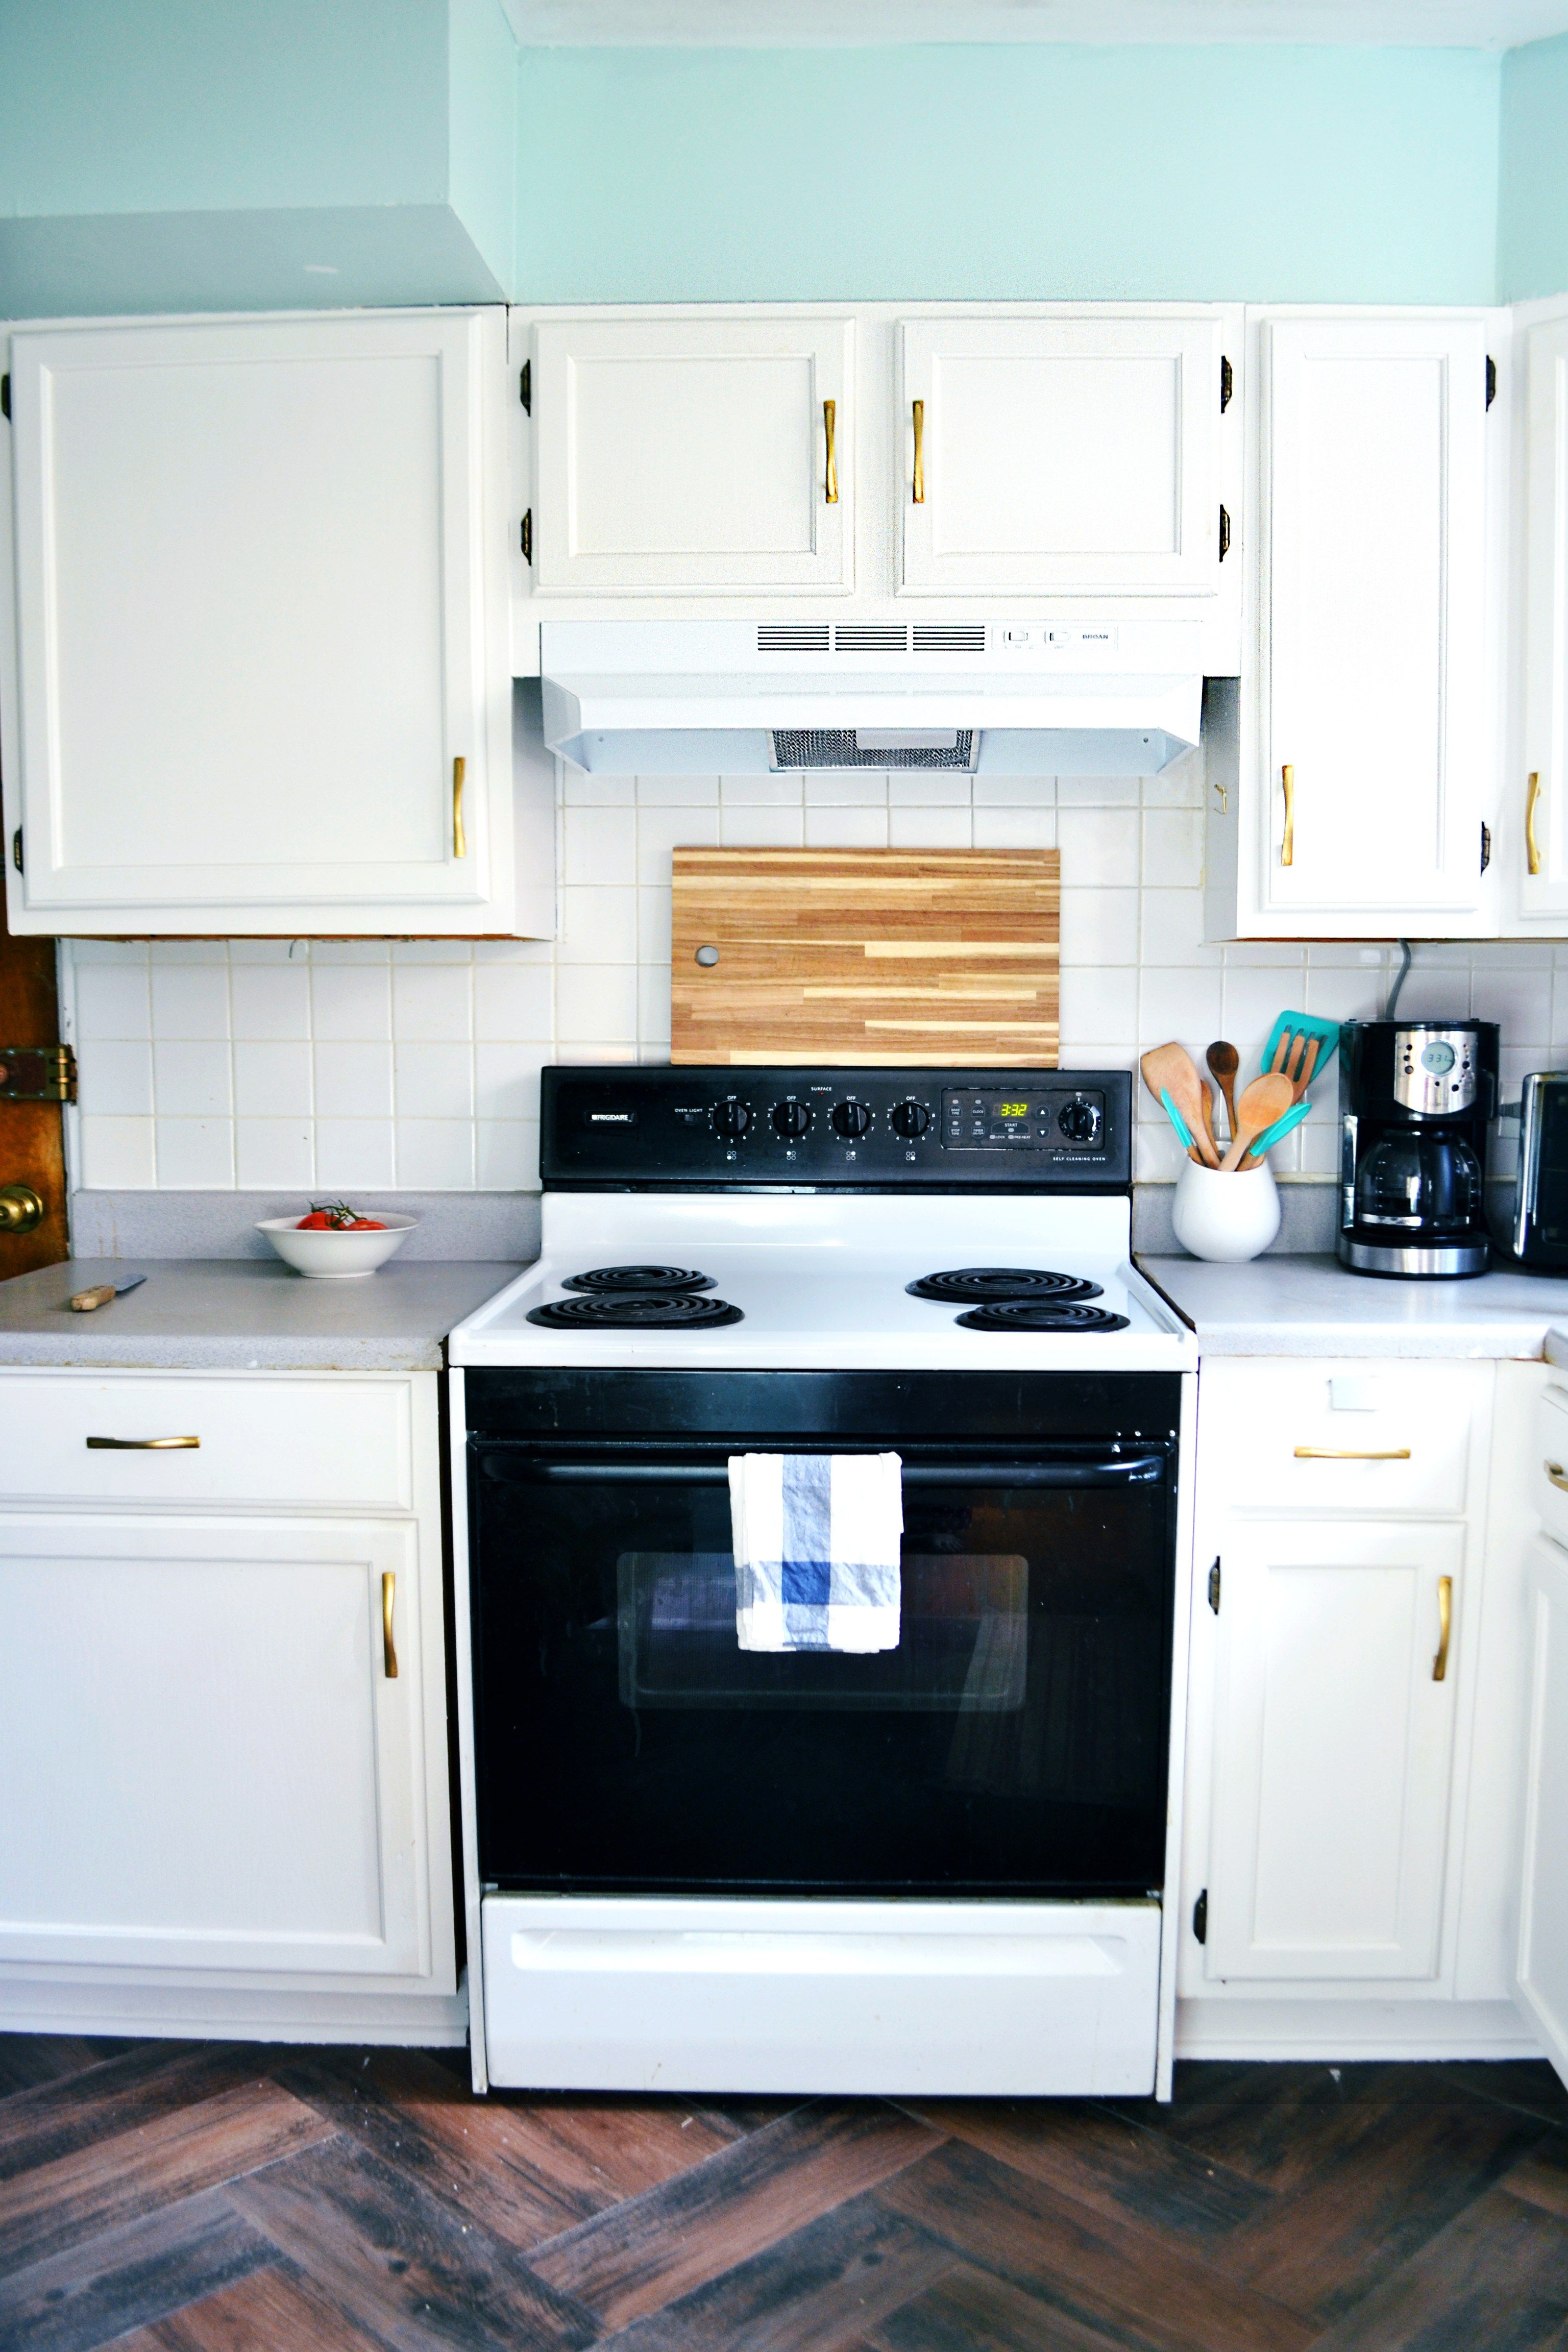 Installing And Converting A Hardwired Range Hood To Plug In Best Friends Pizza Club Range Hood White Kitchen Cabinets Kitchen Cabinets